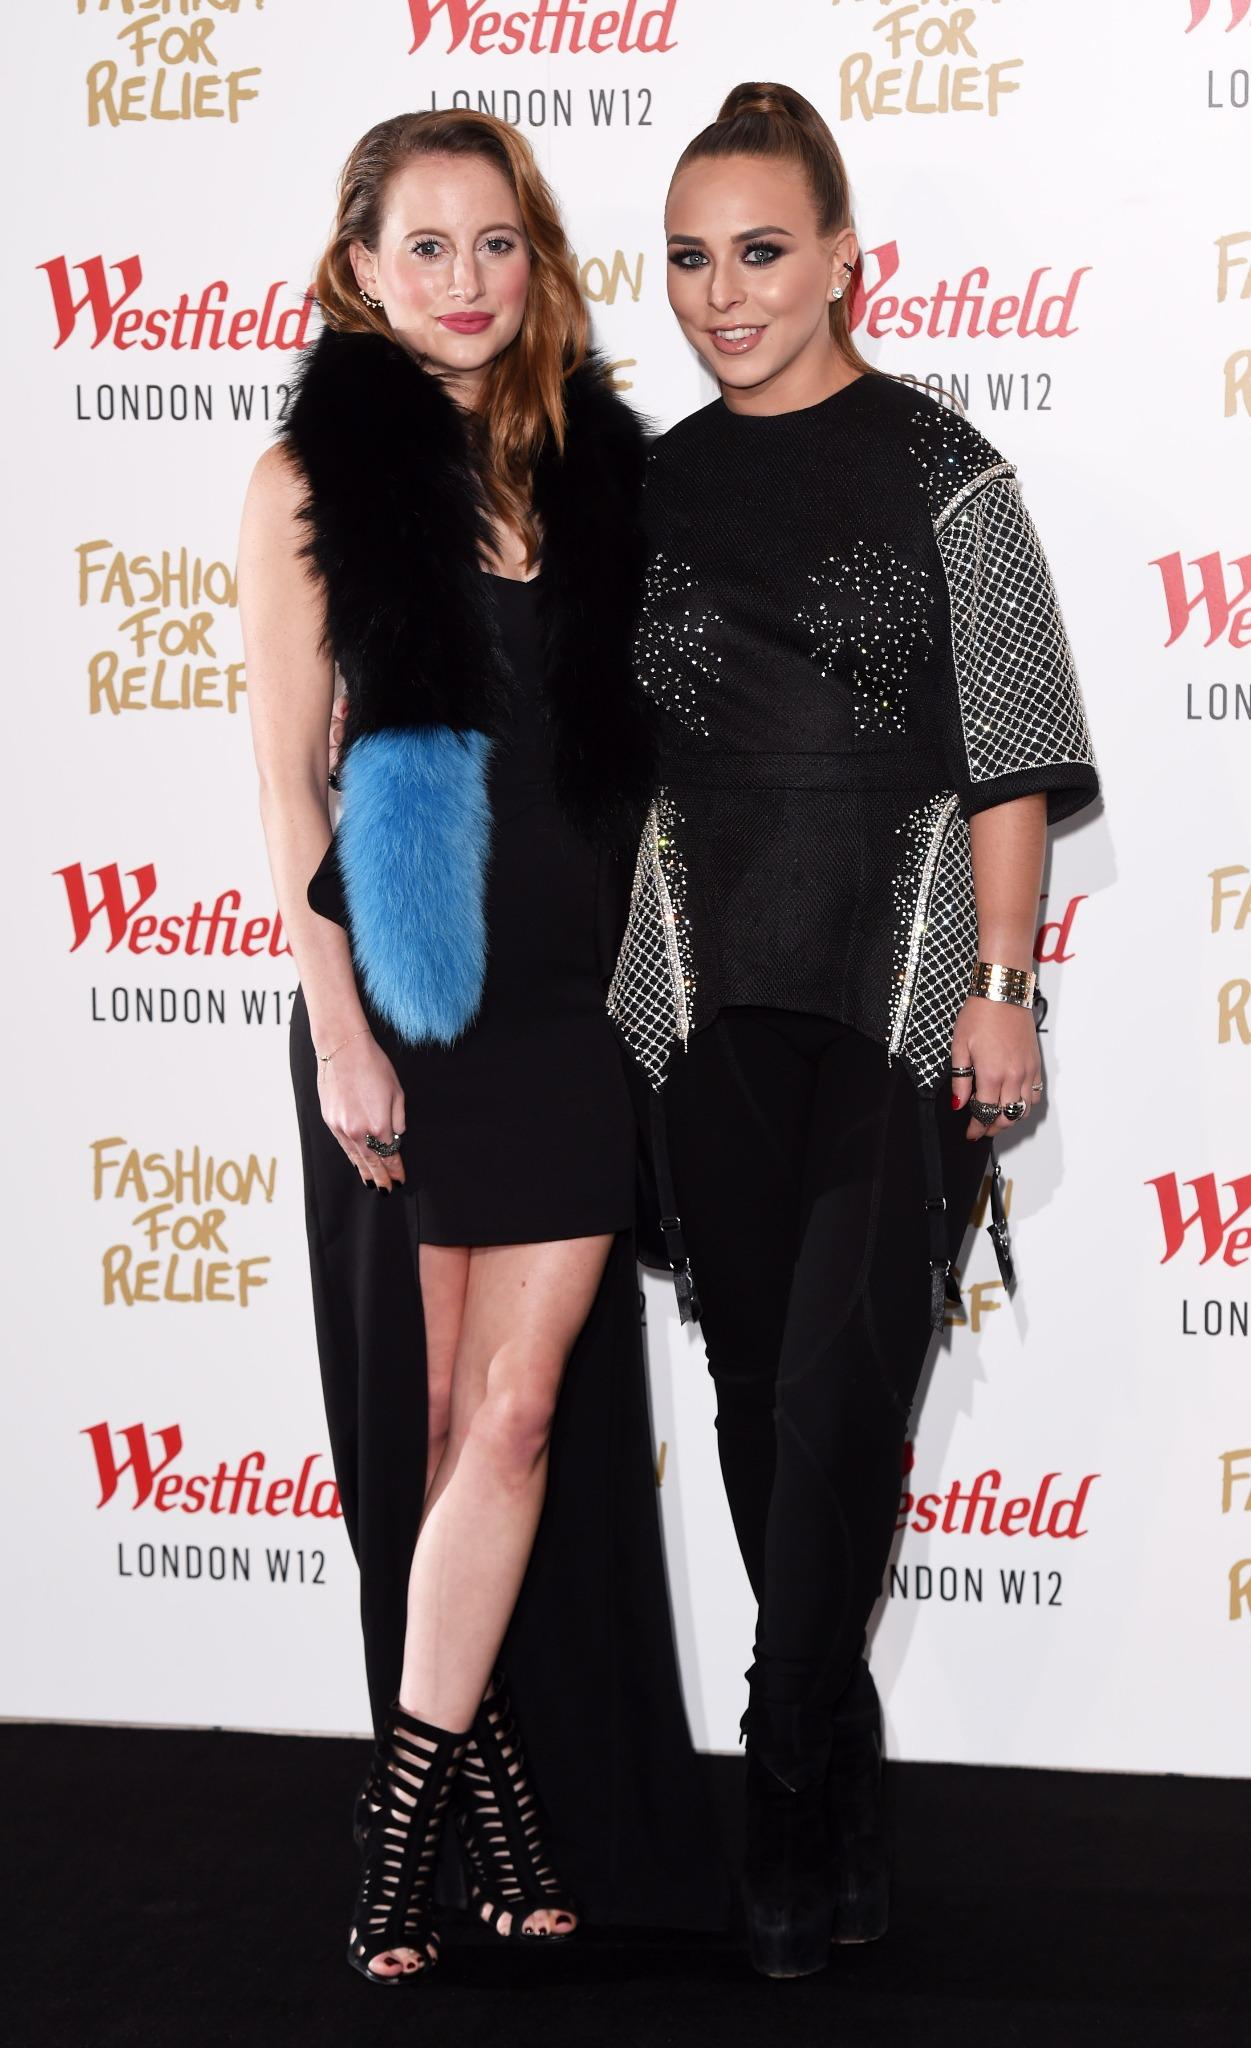 RT @Lipstick_UK: @ChloeGreen5 & @RosieFortescue looked stunning last night!  Read more >  http://t.co/faiMl9aYzk http://t.co/D1k8r9cI5l